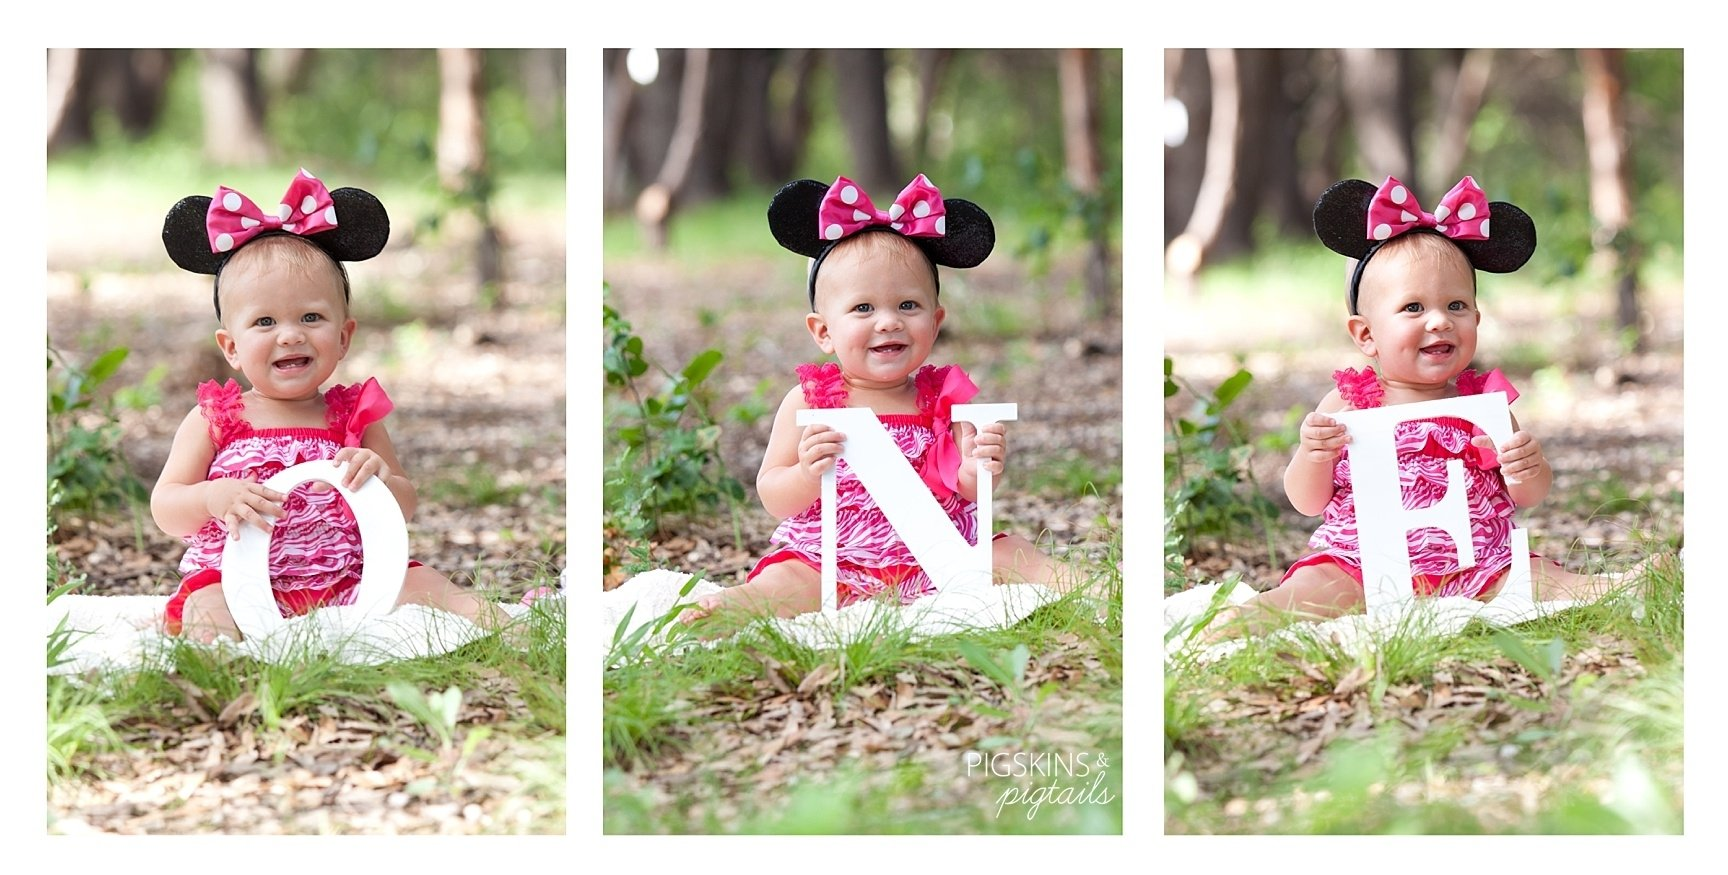 10 Fabulous 1St Birthday Photo Shoot Ideas minnie theme first birthday photo shoot pigskins pigtails 2020